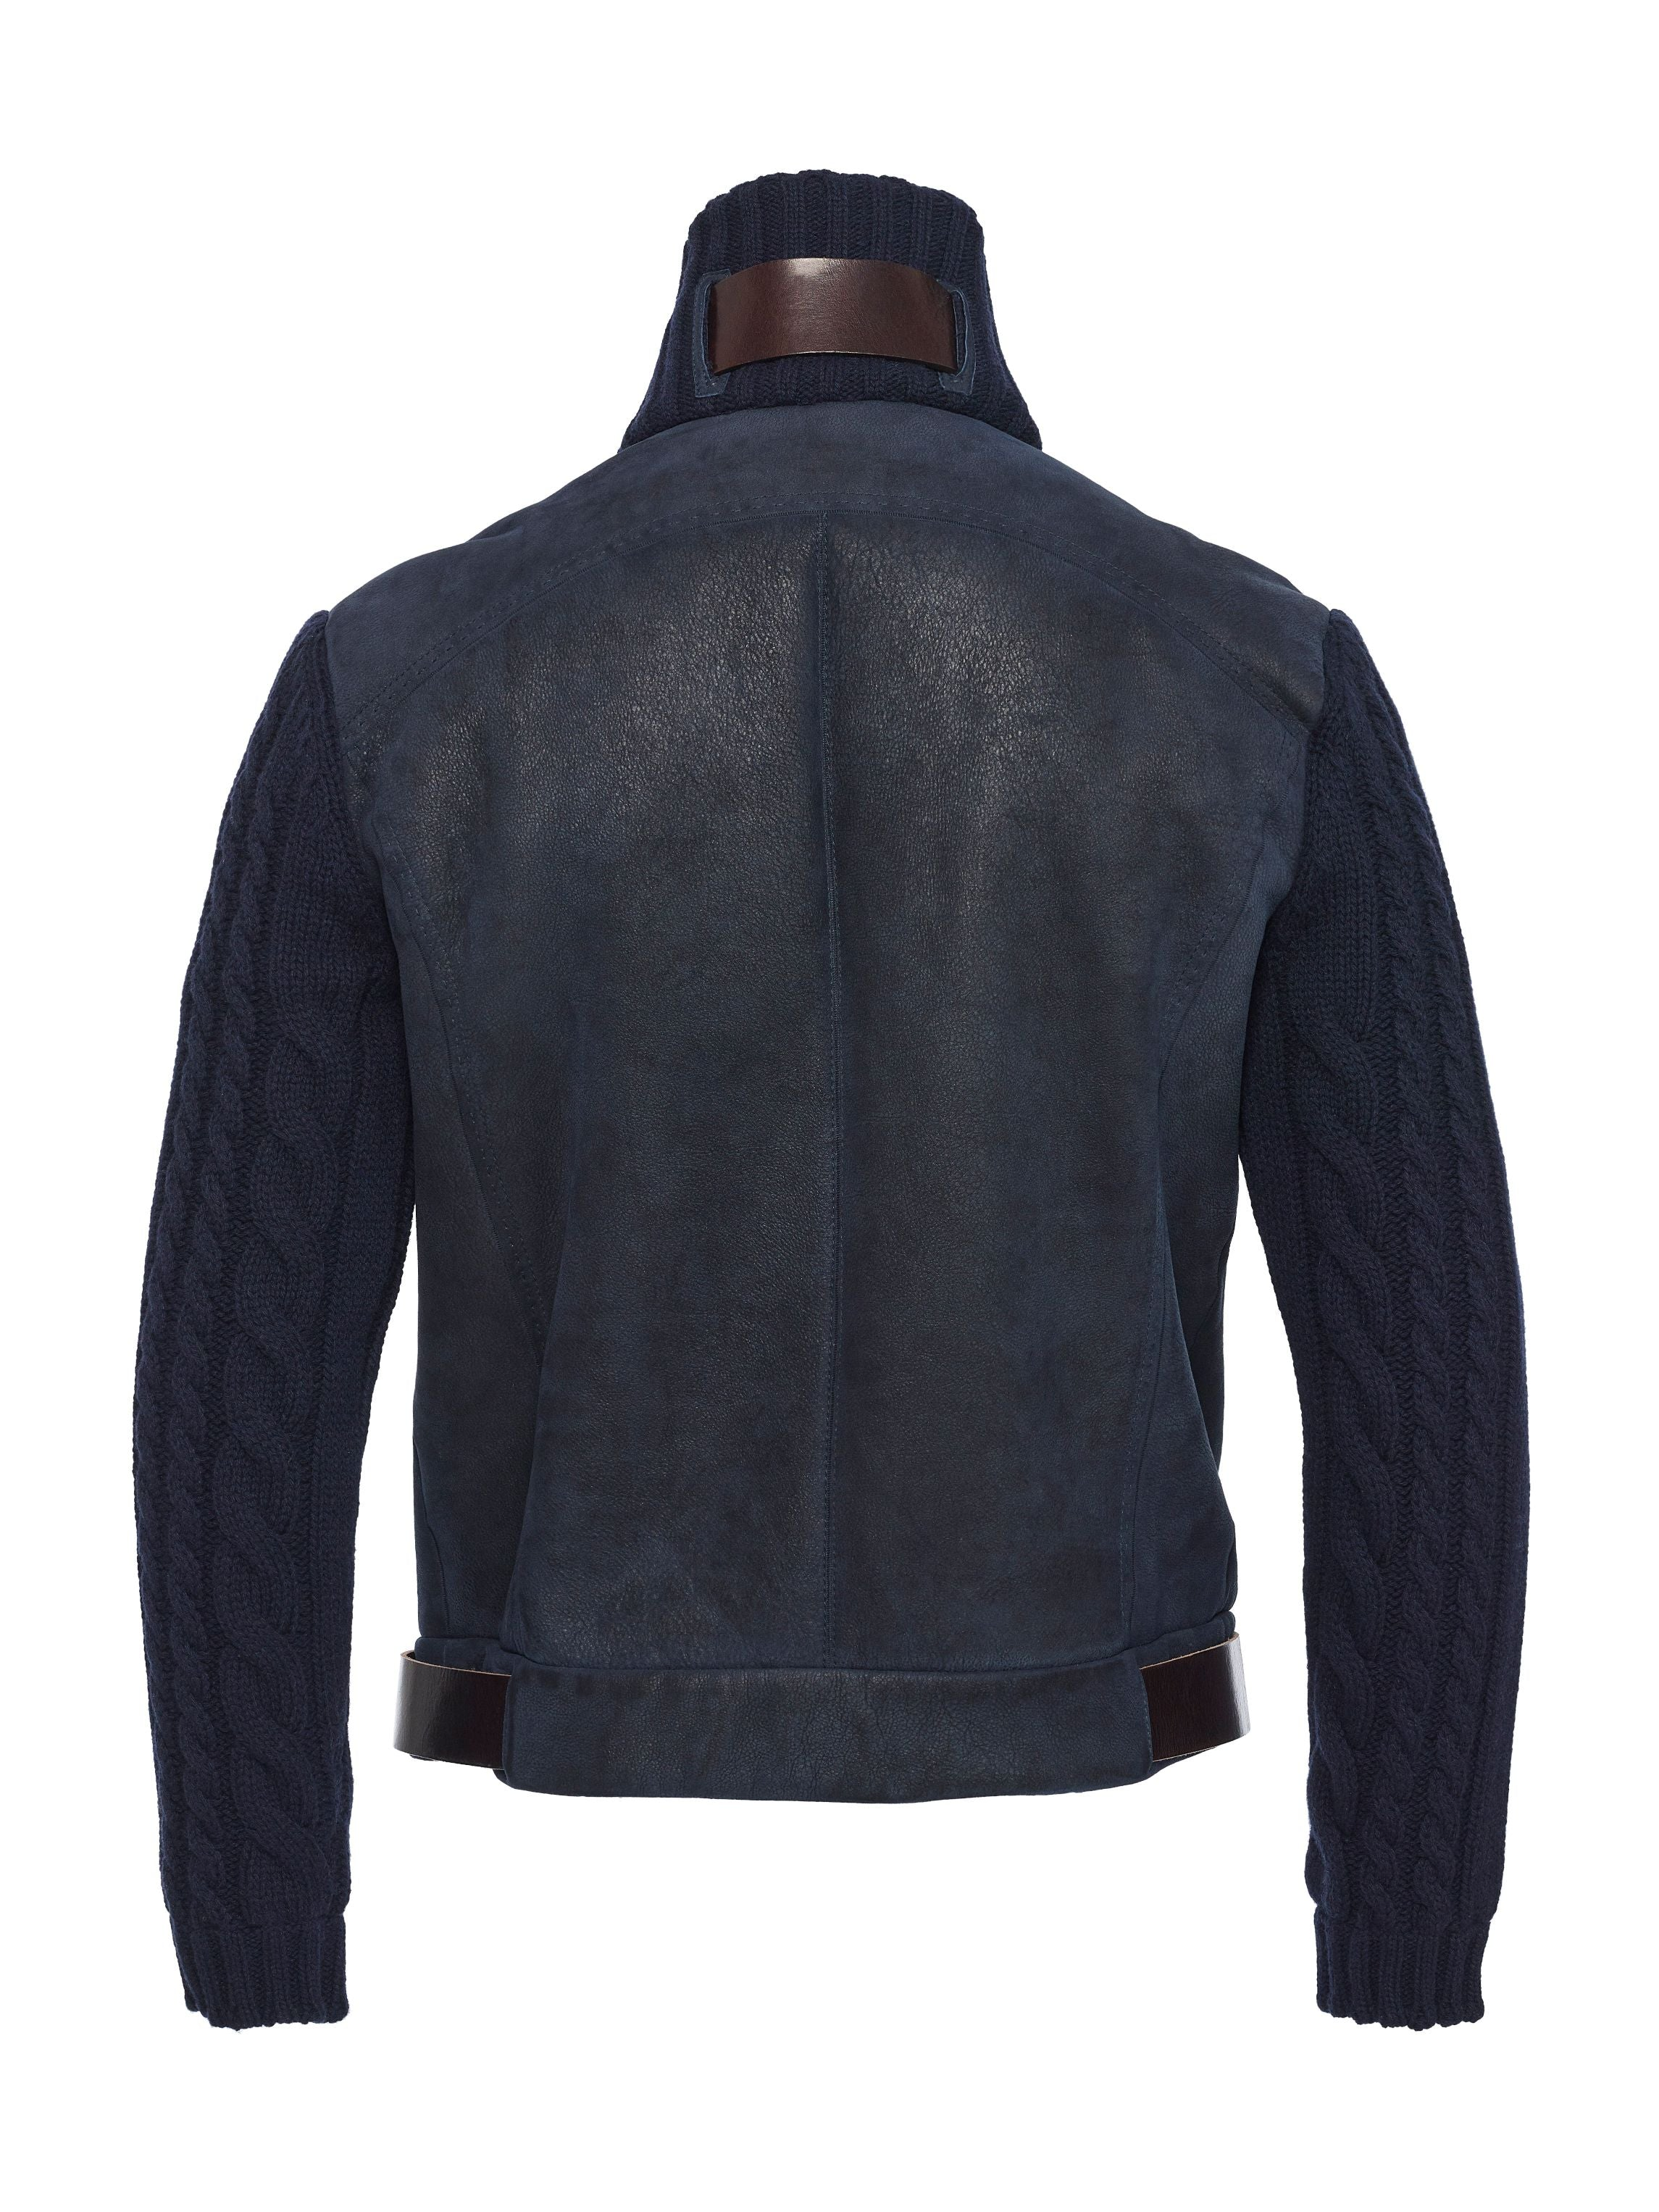 Back side Spanish lamb shearling with cashmere cable knit collar and sleeves with top grain belting leather